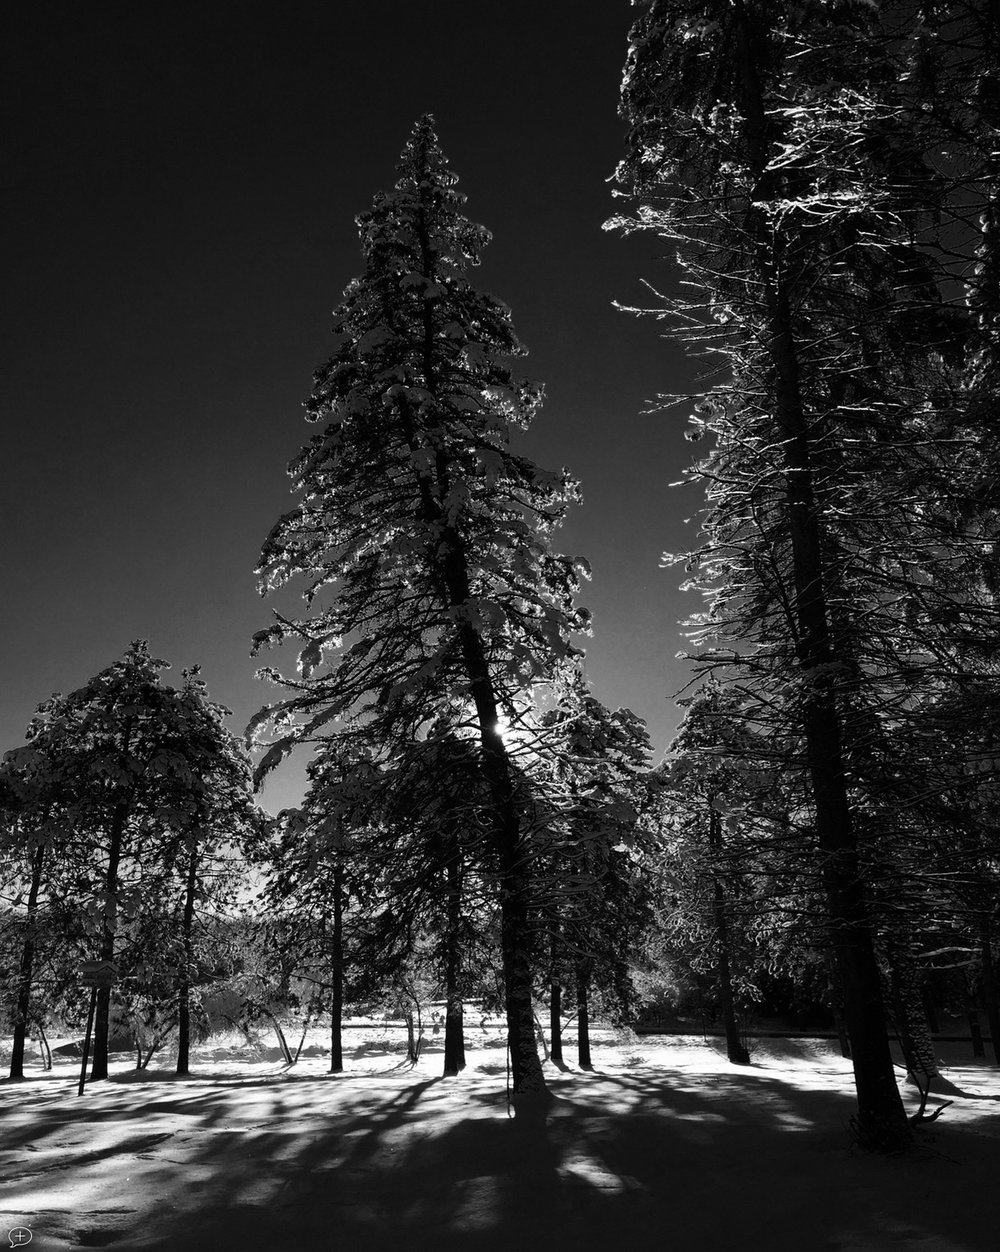 """19.  Pine Trees in Saratoga State Park,  iPhone 6, 2014. Saratoga Springs, NY. (Canvas Photo, 16"""" x 20,""""). In the winter months, the Farmers Market moves to the Lincoln Baths building in the State Park, and I try to get there early. When the sun is still low, and there's frost on the trees, it makes for an eerie black-and-white photo opportunity.  ©2014 Sean Walmsley"""